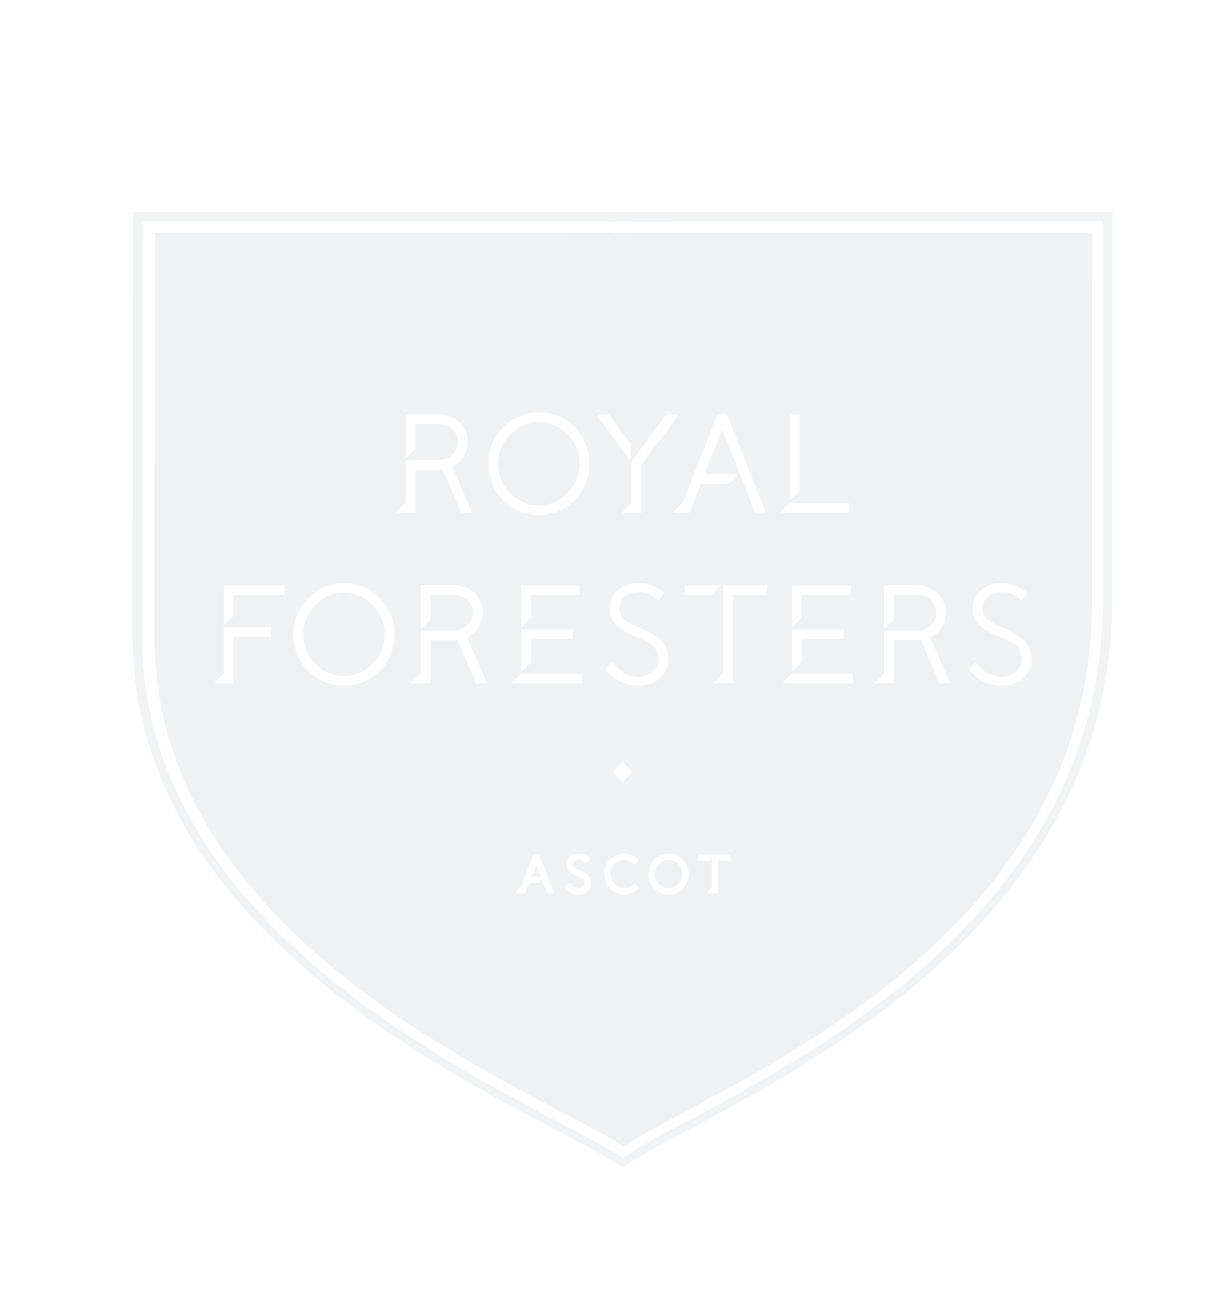 The Royal Foresters, Ascot | Pub, Restaurant, Hotel